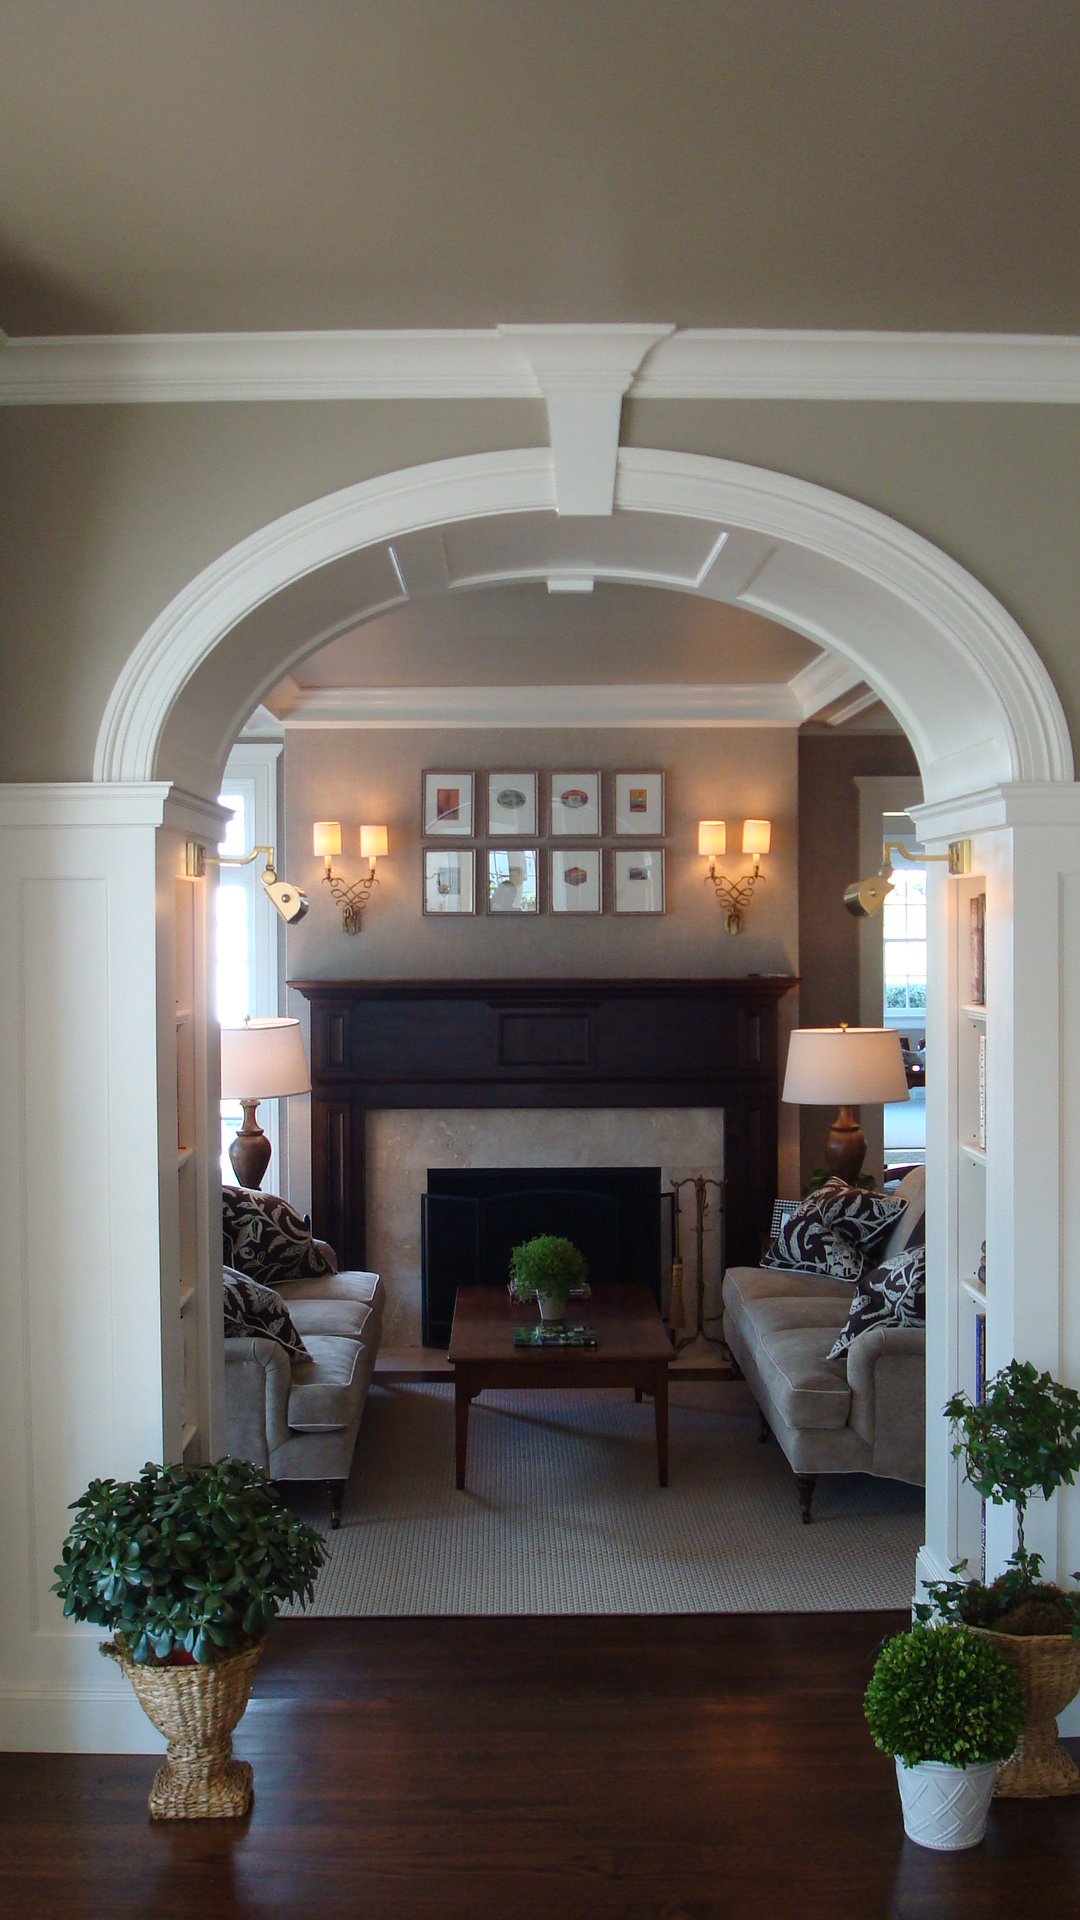 Renovation-colonial-arched-doorway-old-greenwich-ct-interior-w.jpg